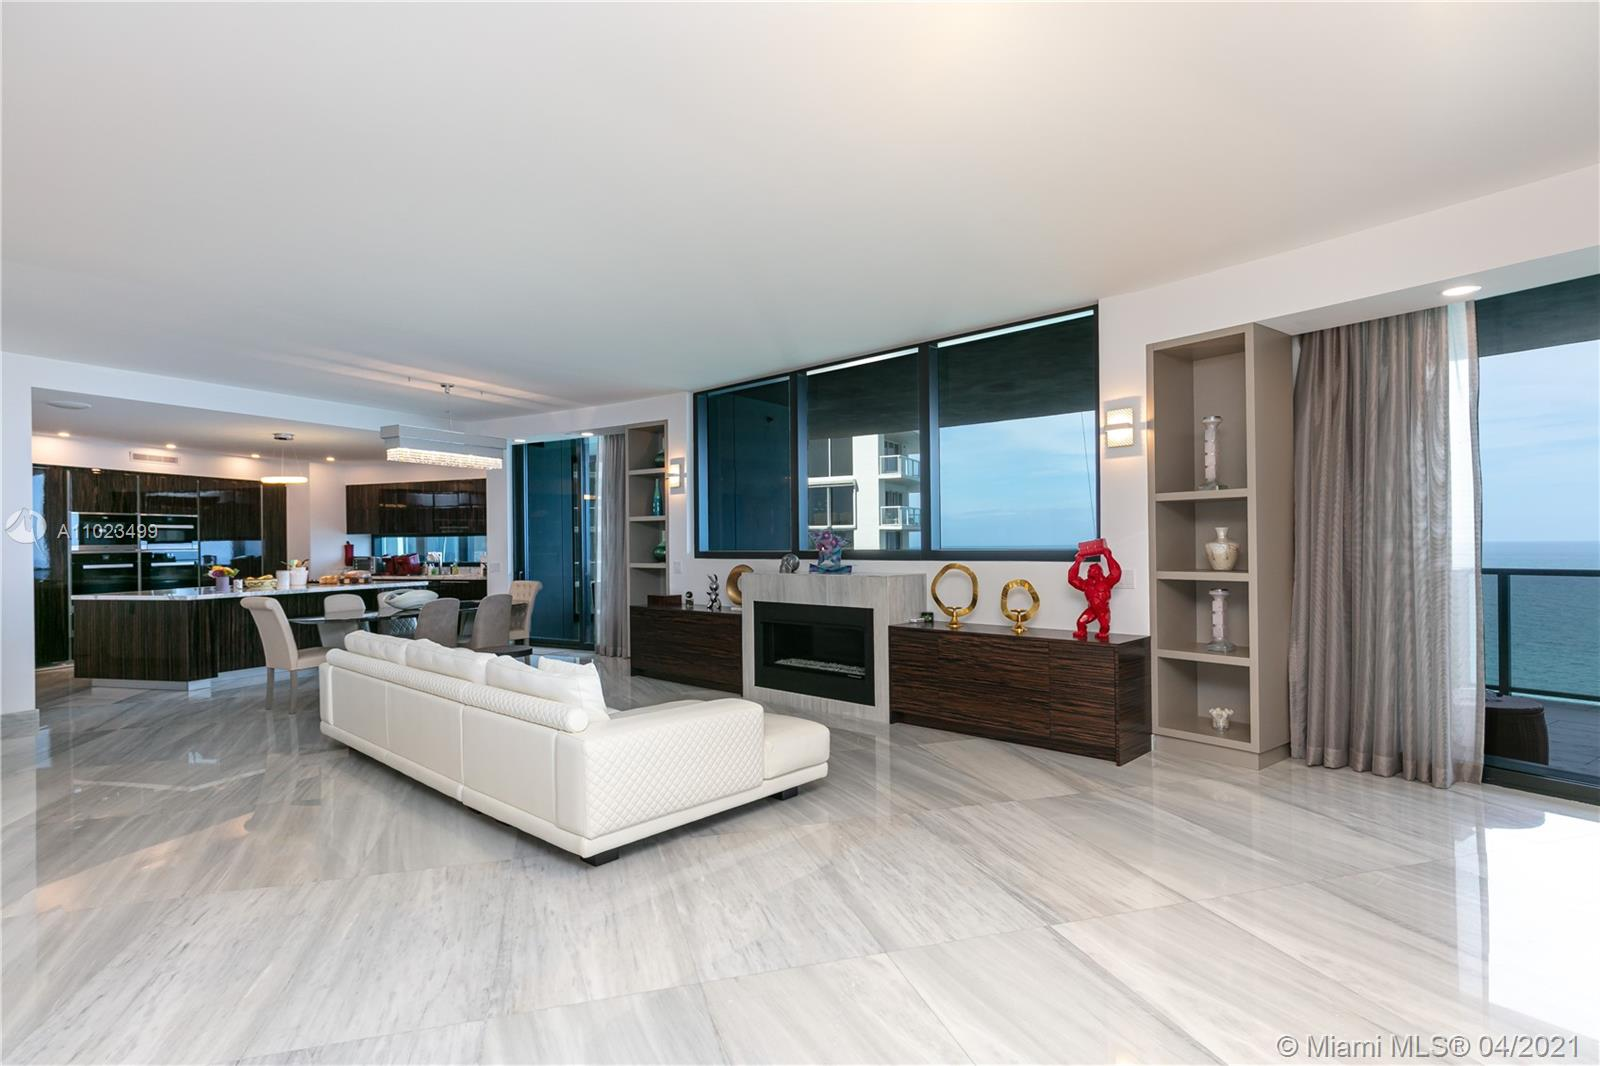 18555 Collins Ave, Unit #2105 Luxury Real Estate